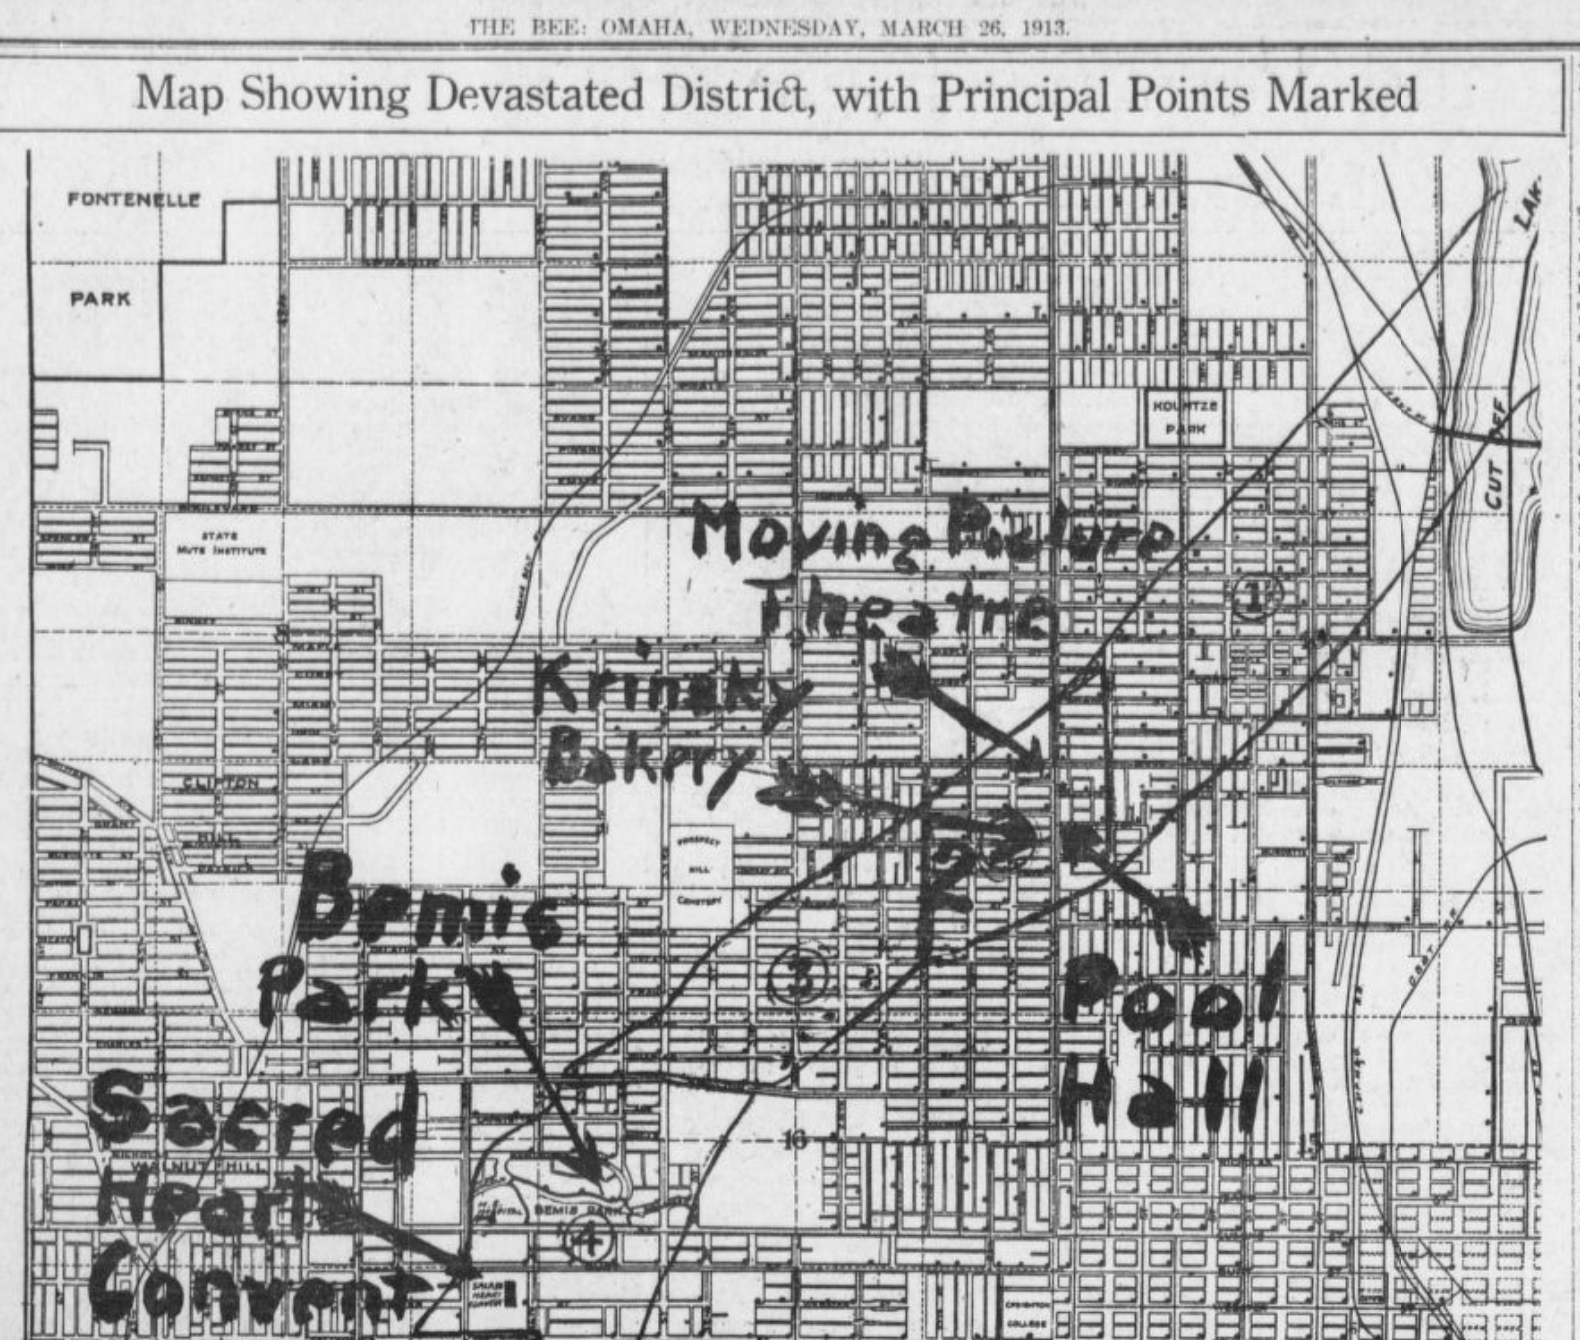 1913 Easter Sunday Tornado path, Omaha Bee newspaper